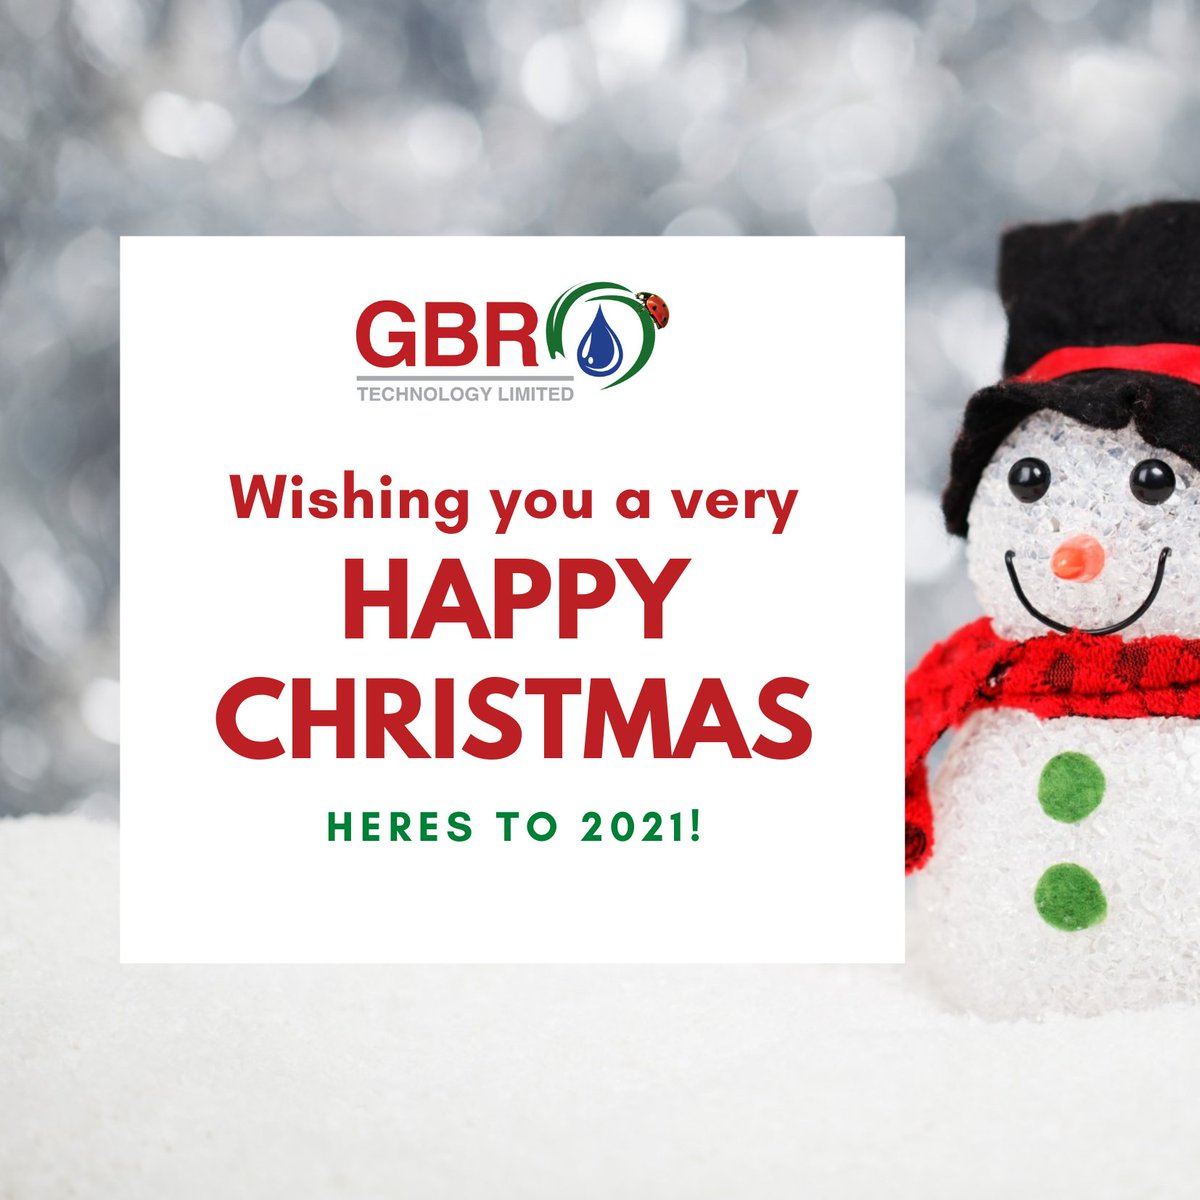 2021 Christmas Technology Gbr Technology Advanced Amenity Products On Twitter On Behalf Of All The Gbr Team We D Like To Thank You For Your Continued Support This Year We Will Be Closing For The